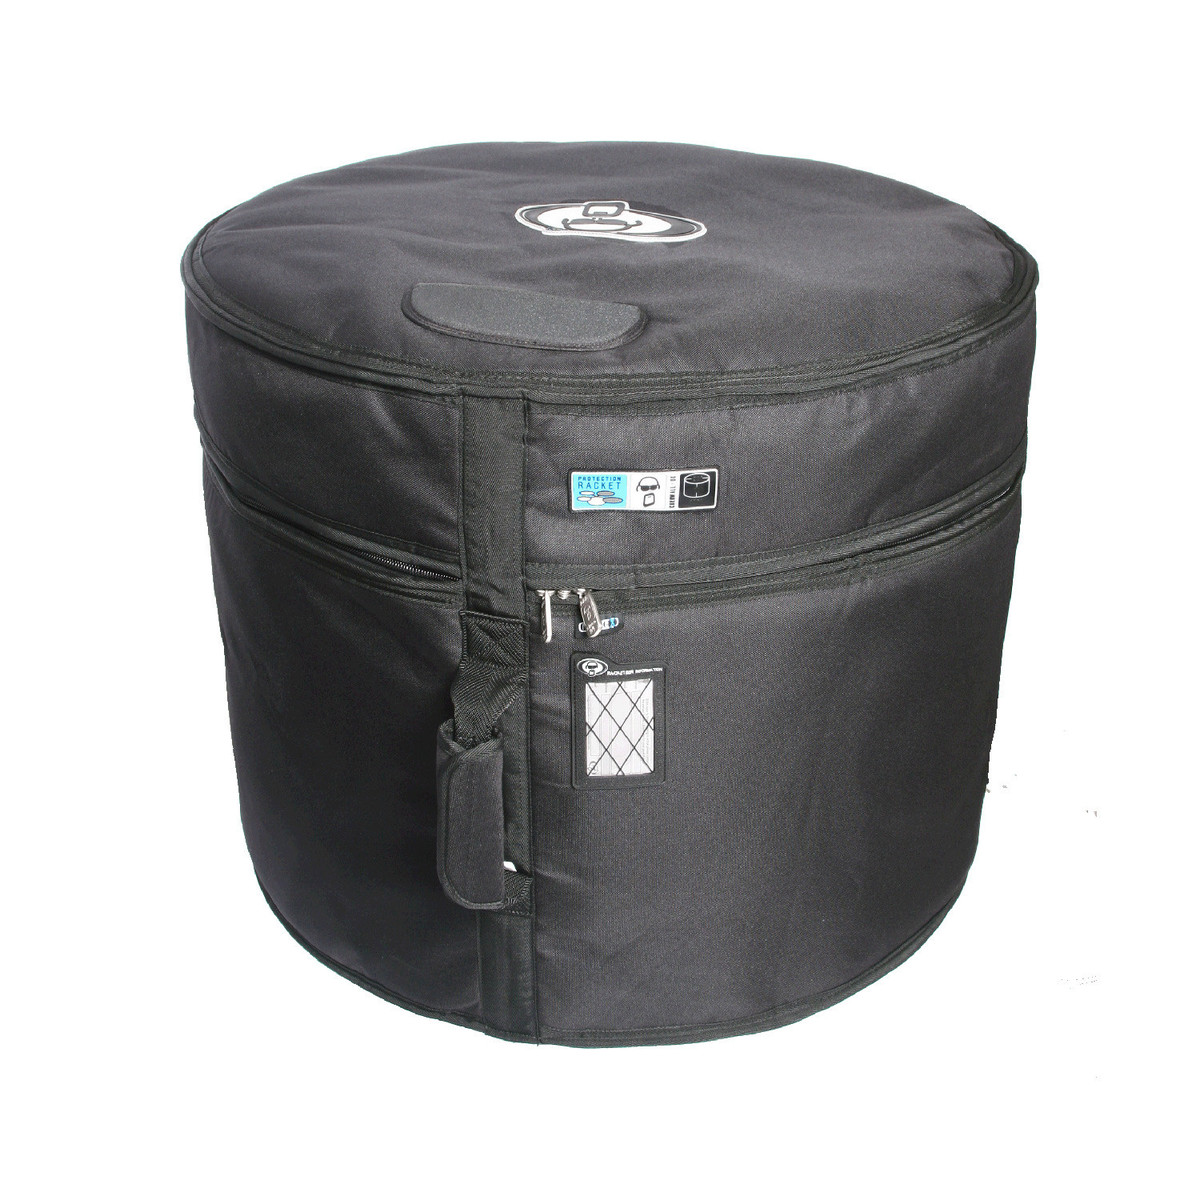 protection racket 18 39 39 x 16 39 39 bass drum case at gear4music. Black Bedroom Furniture Sets. Home Design Ideas